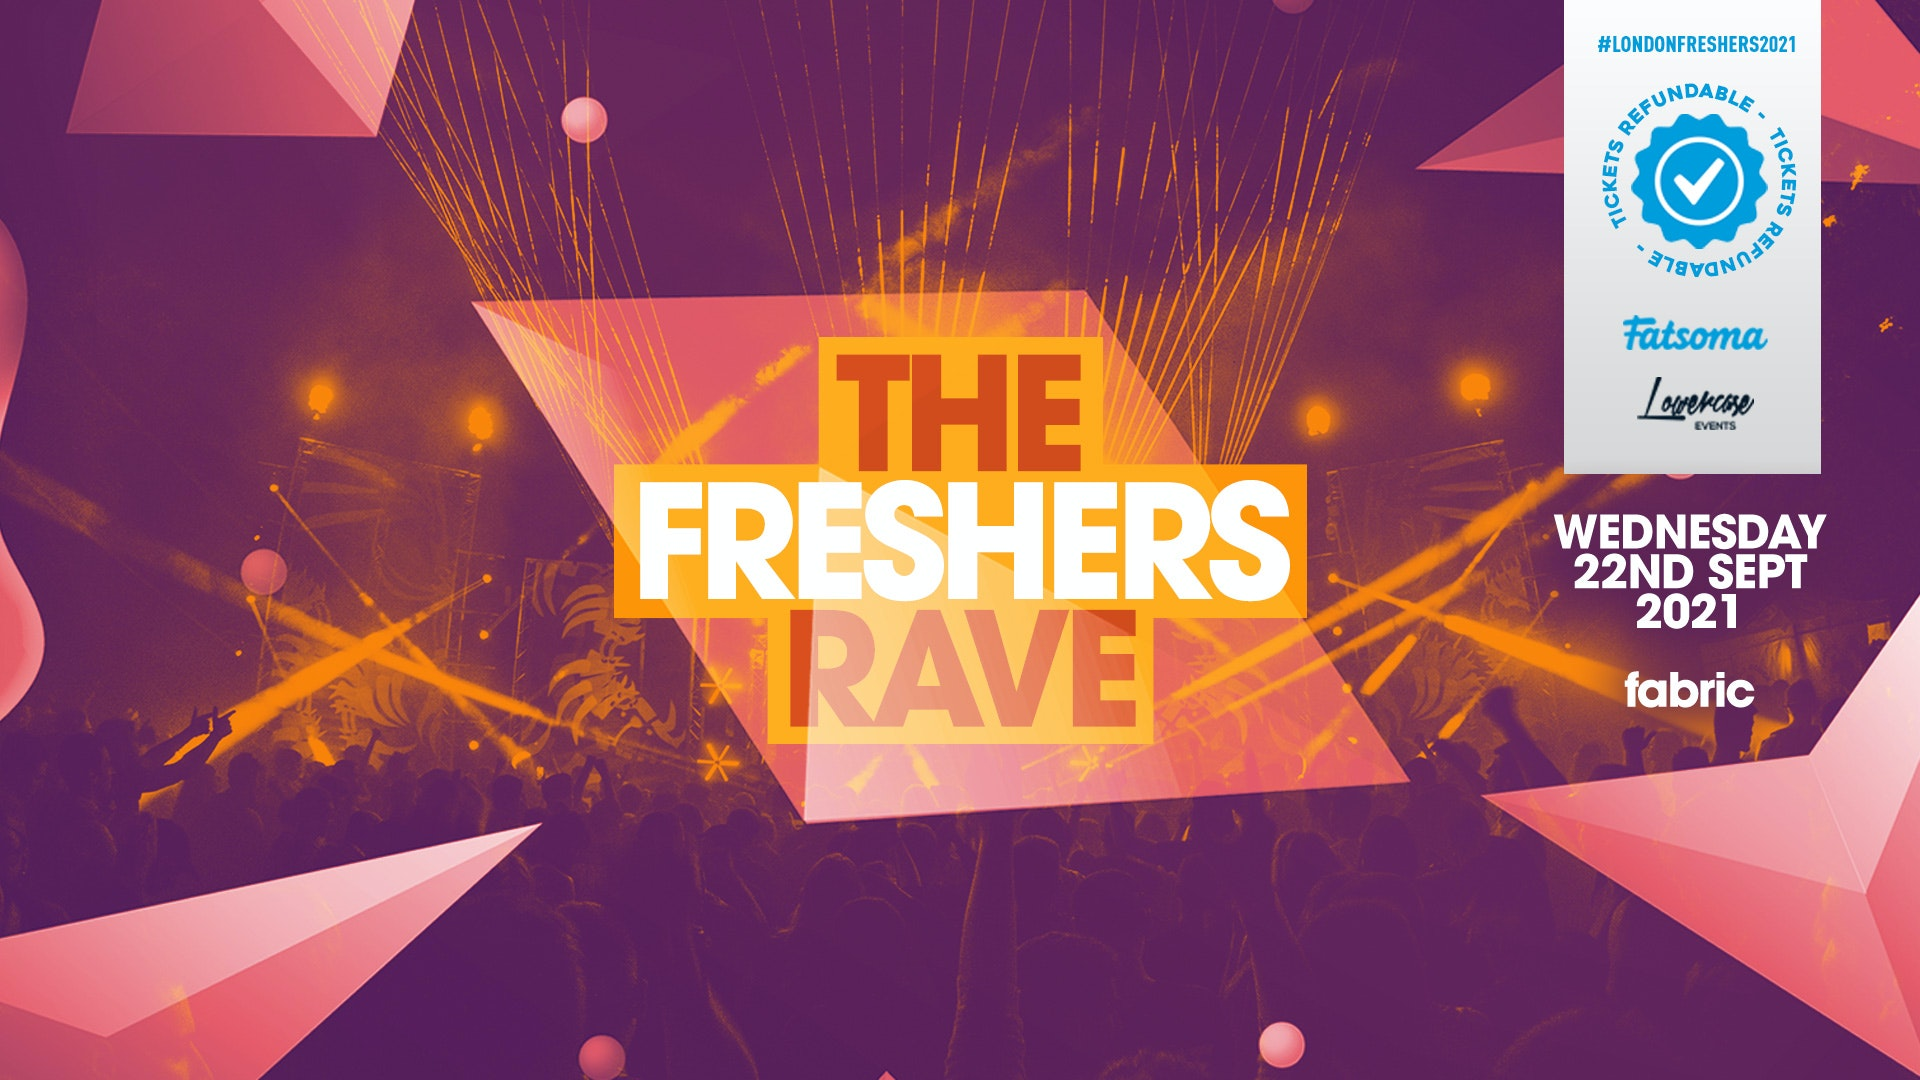 THE 2021 FRESHERS RAVE AT FABRIC! // FRESHERS WEEK 1 DAY 4